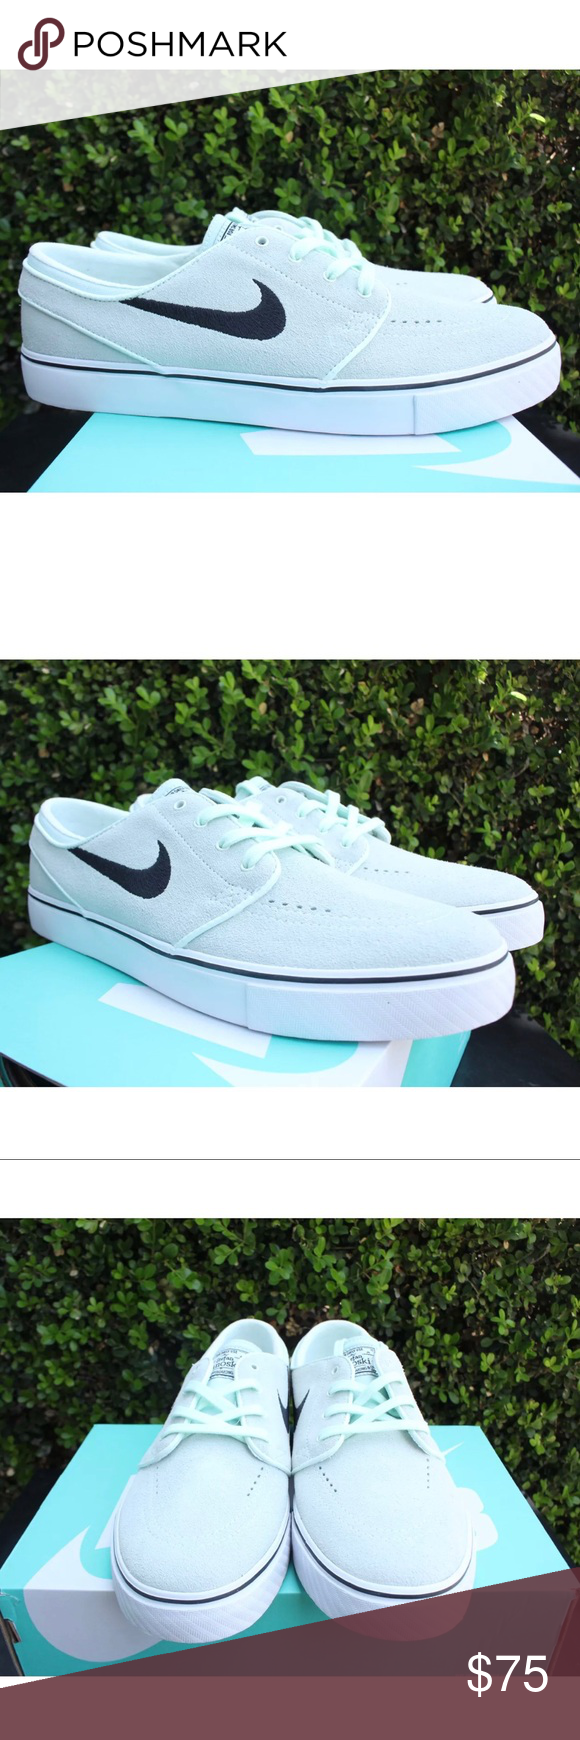 sports shoes 8bab8 a72ce NEW Men s 10.5 Nike SB Zoom Janoski Shoes NEW Men s 10.5 Nike SB Zoom  Stefan Janoski